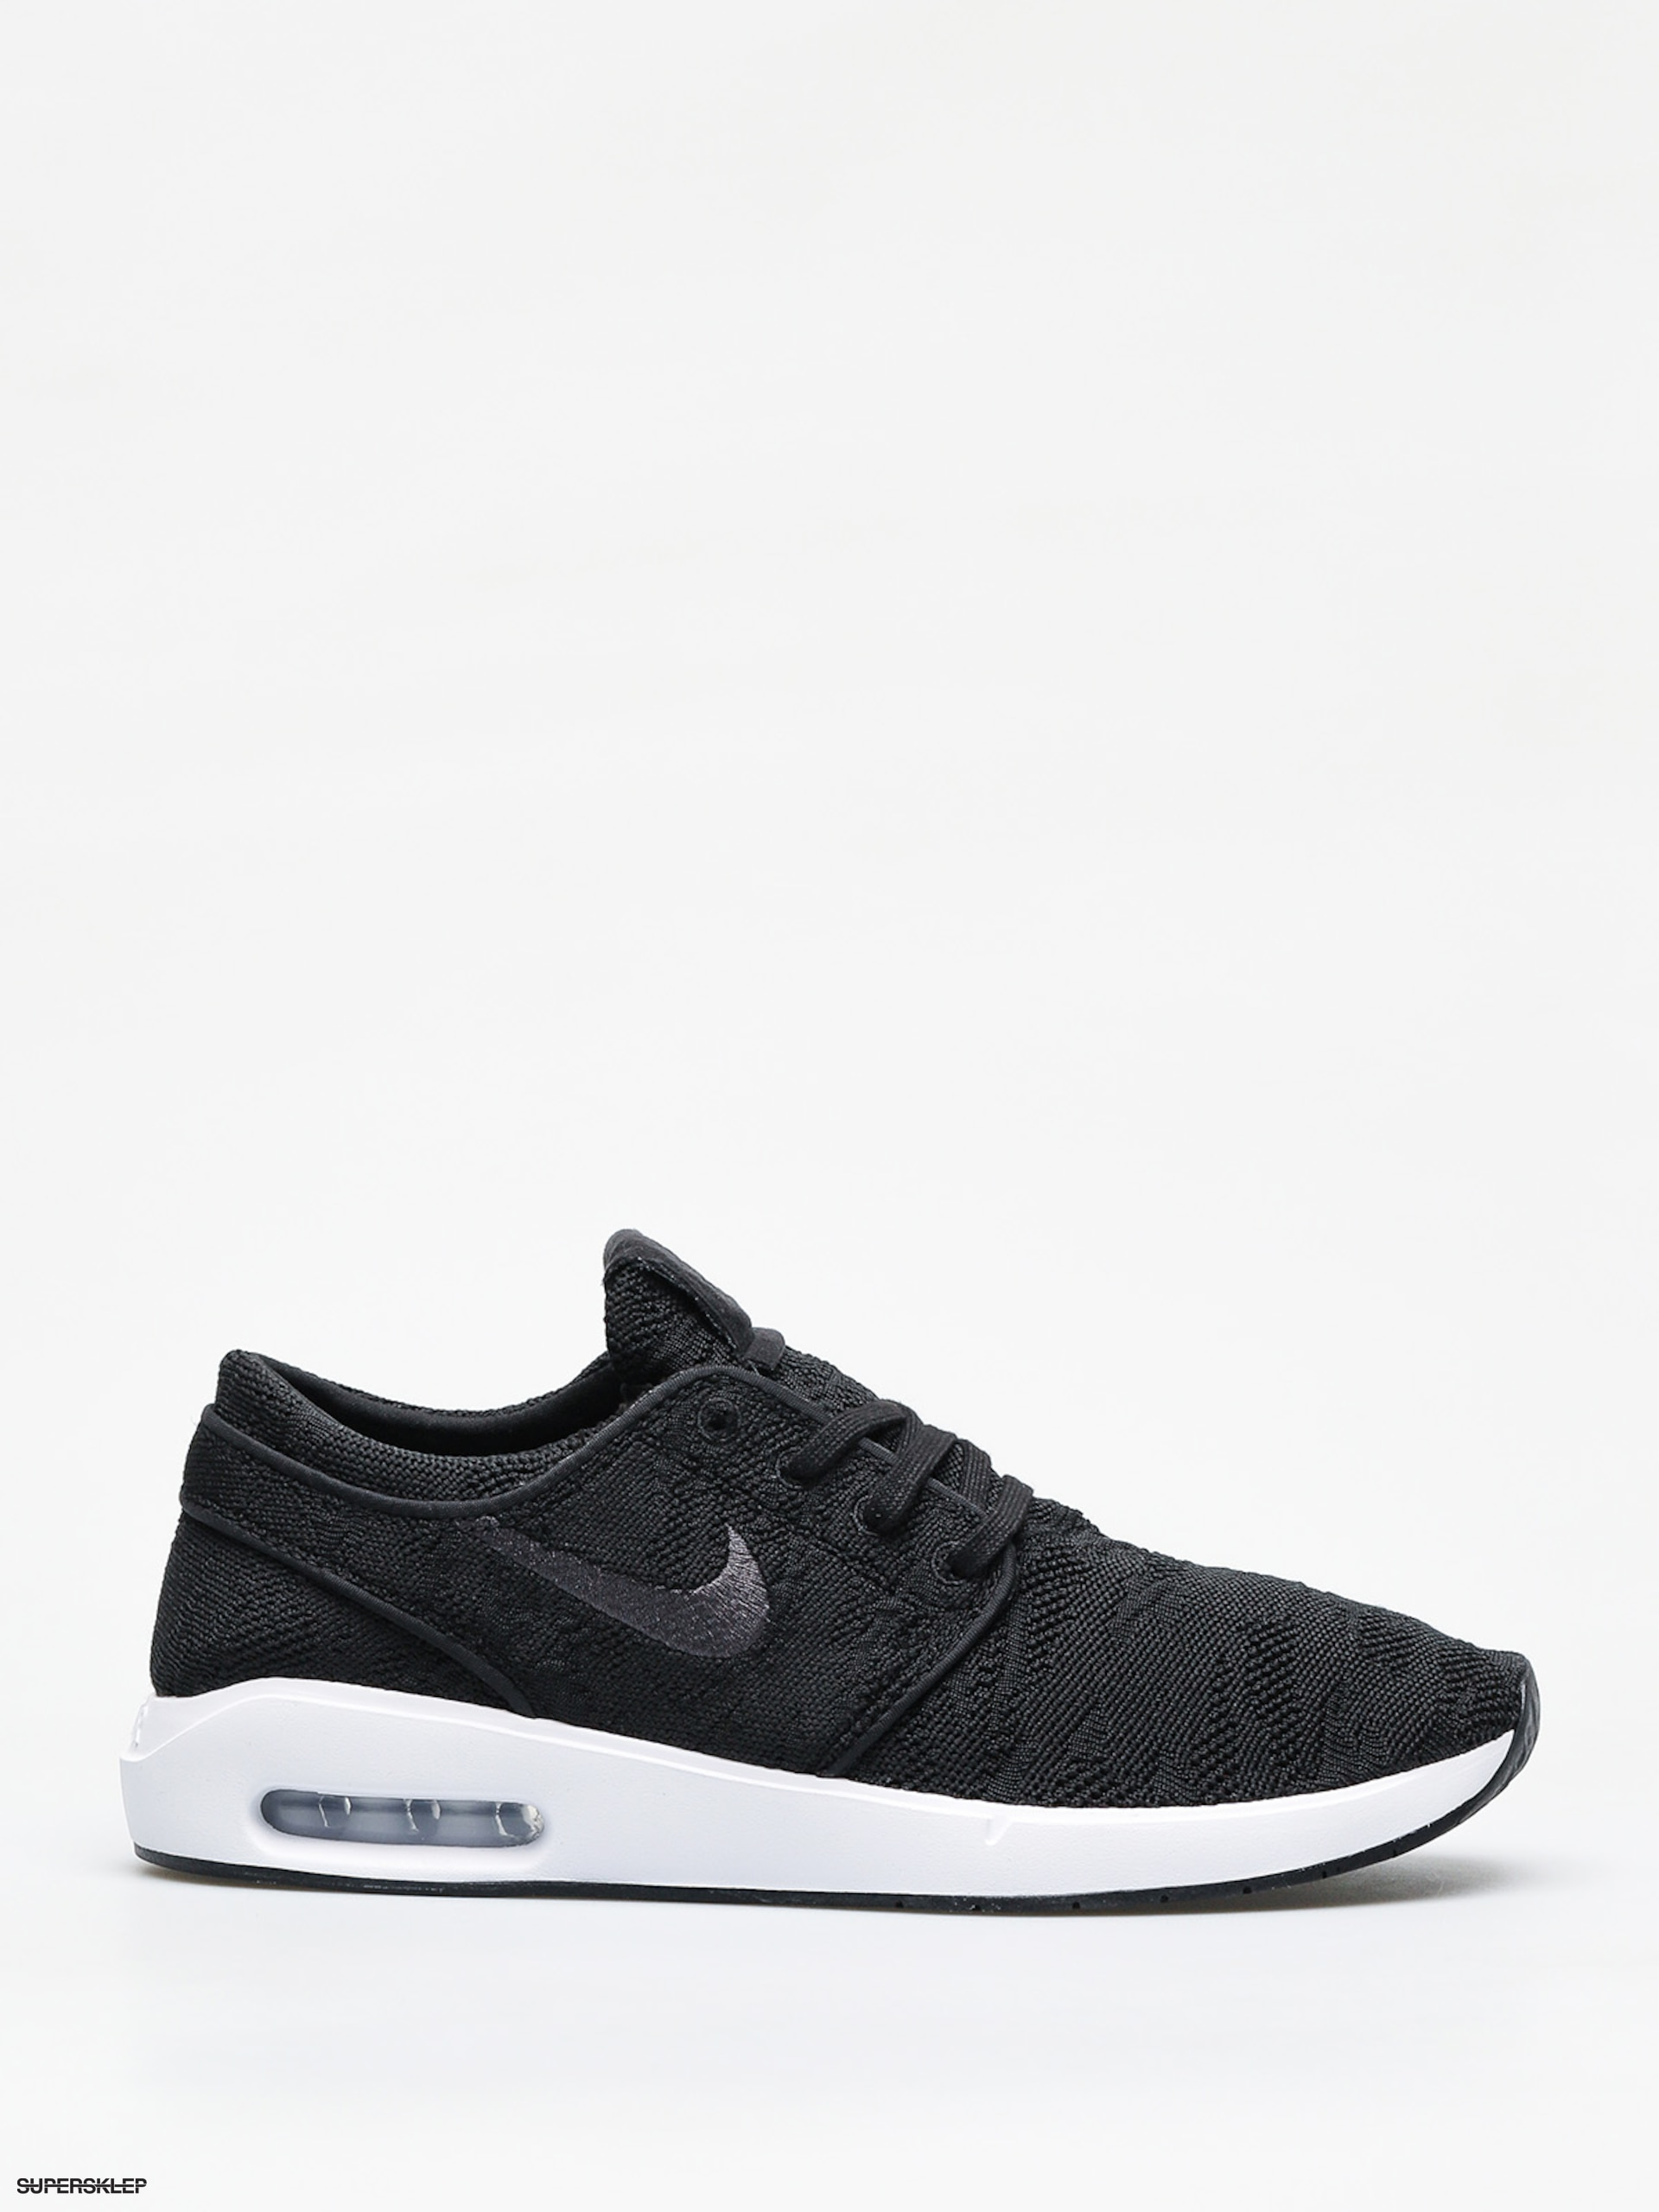 huge selection of 309a8 93ff6 Buty Nike SB Air Max Janoski 2 (blackanthracite white)